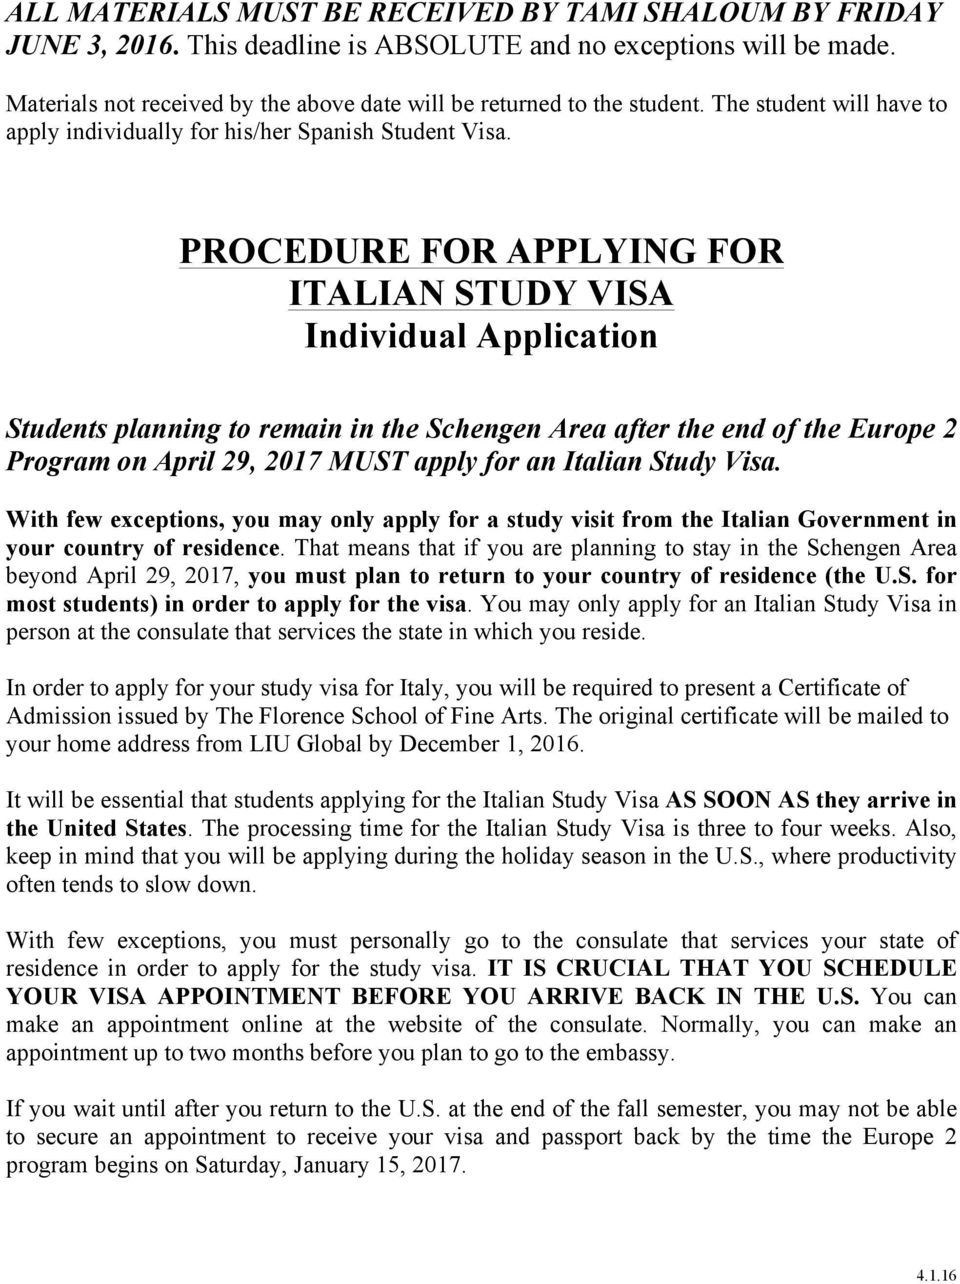 PROCEDURE FOR APPLYING FOR ITALIAN STUDY VISA Individual Application Students planning to remain in the Schengen Area after the end of the Europe 2 Program on April 29, 2017 MUST apply for an Italian